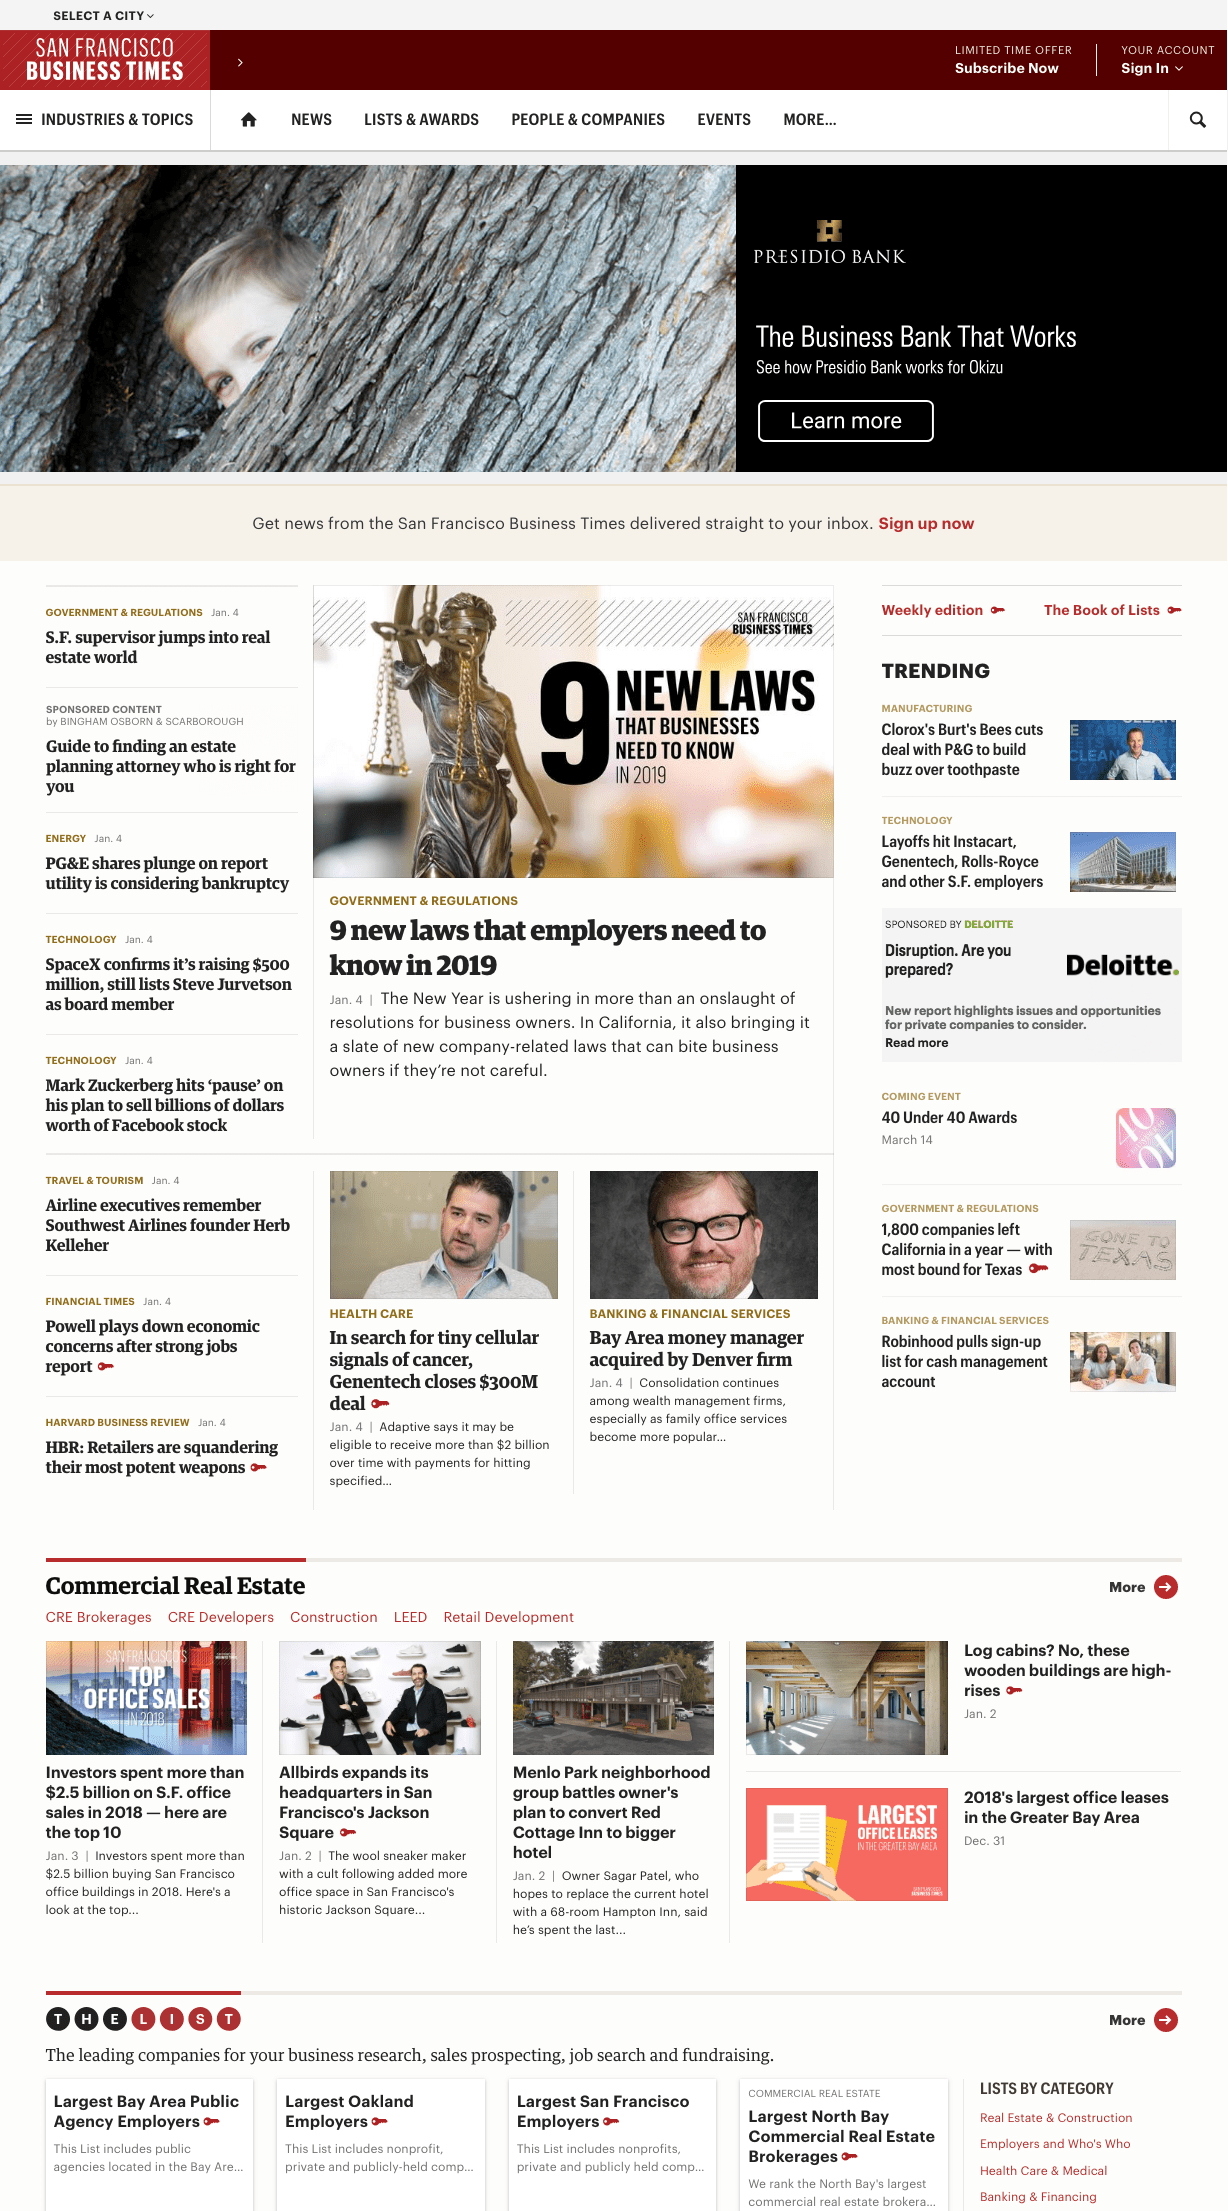 Redesigned San Francisco Business Times homepage